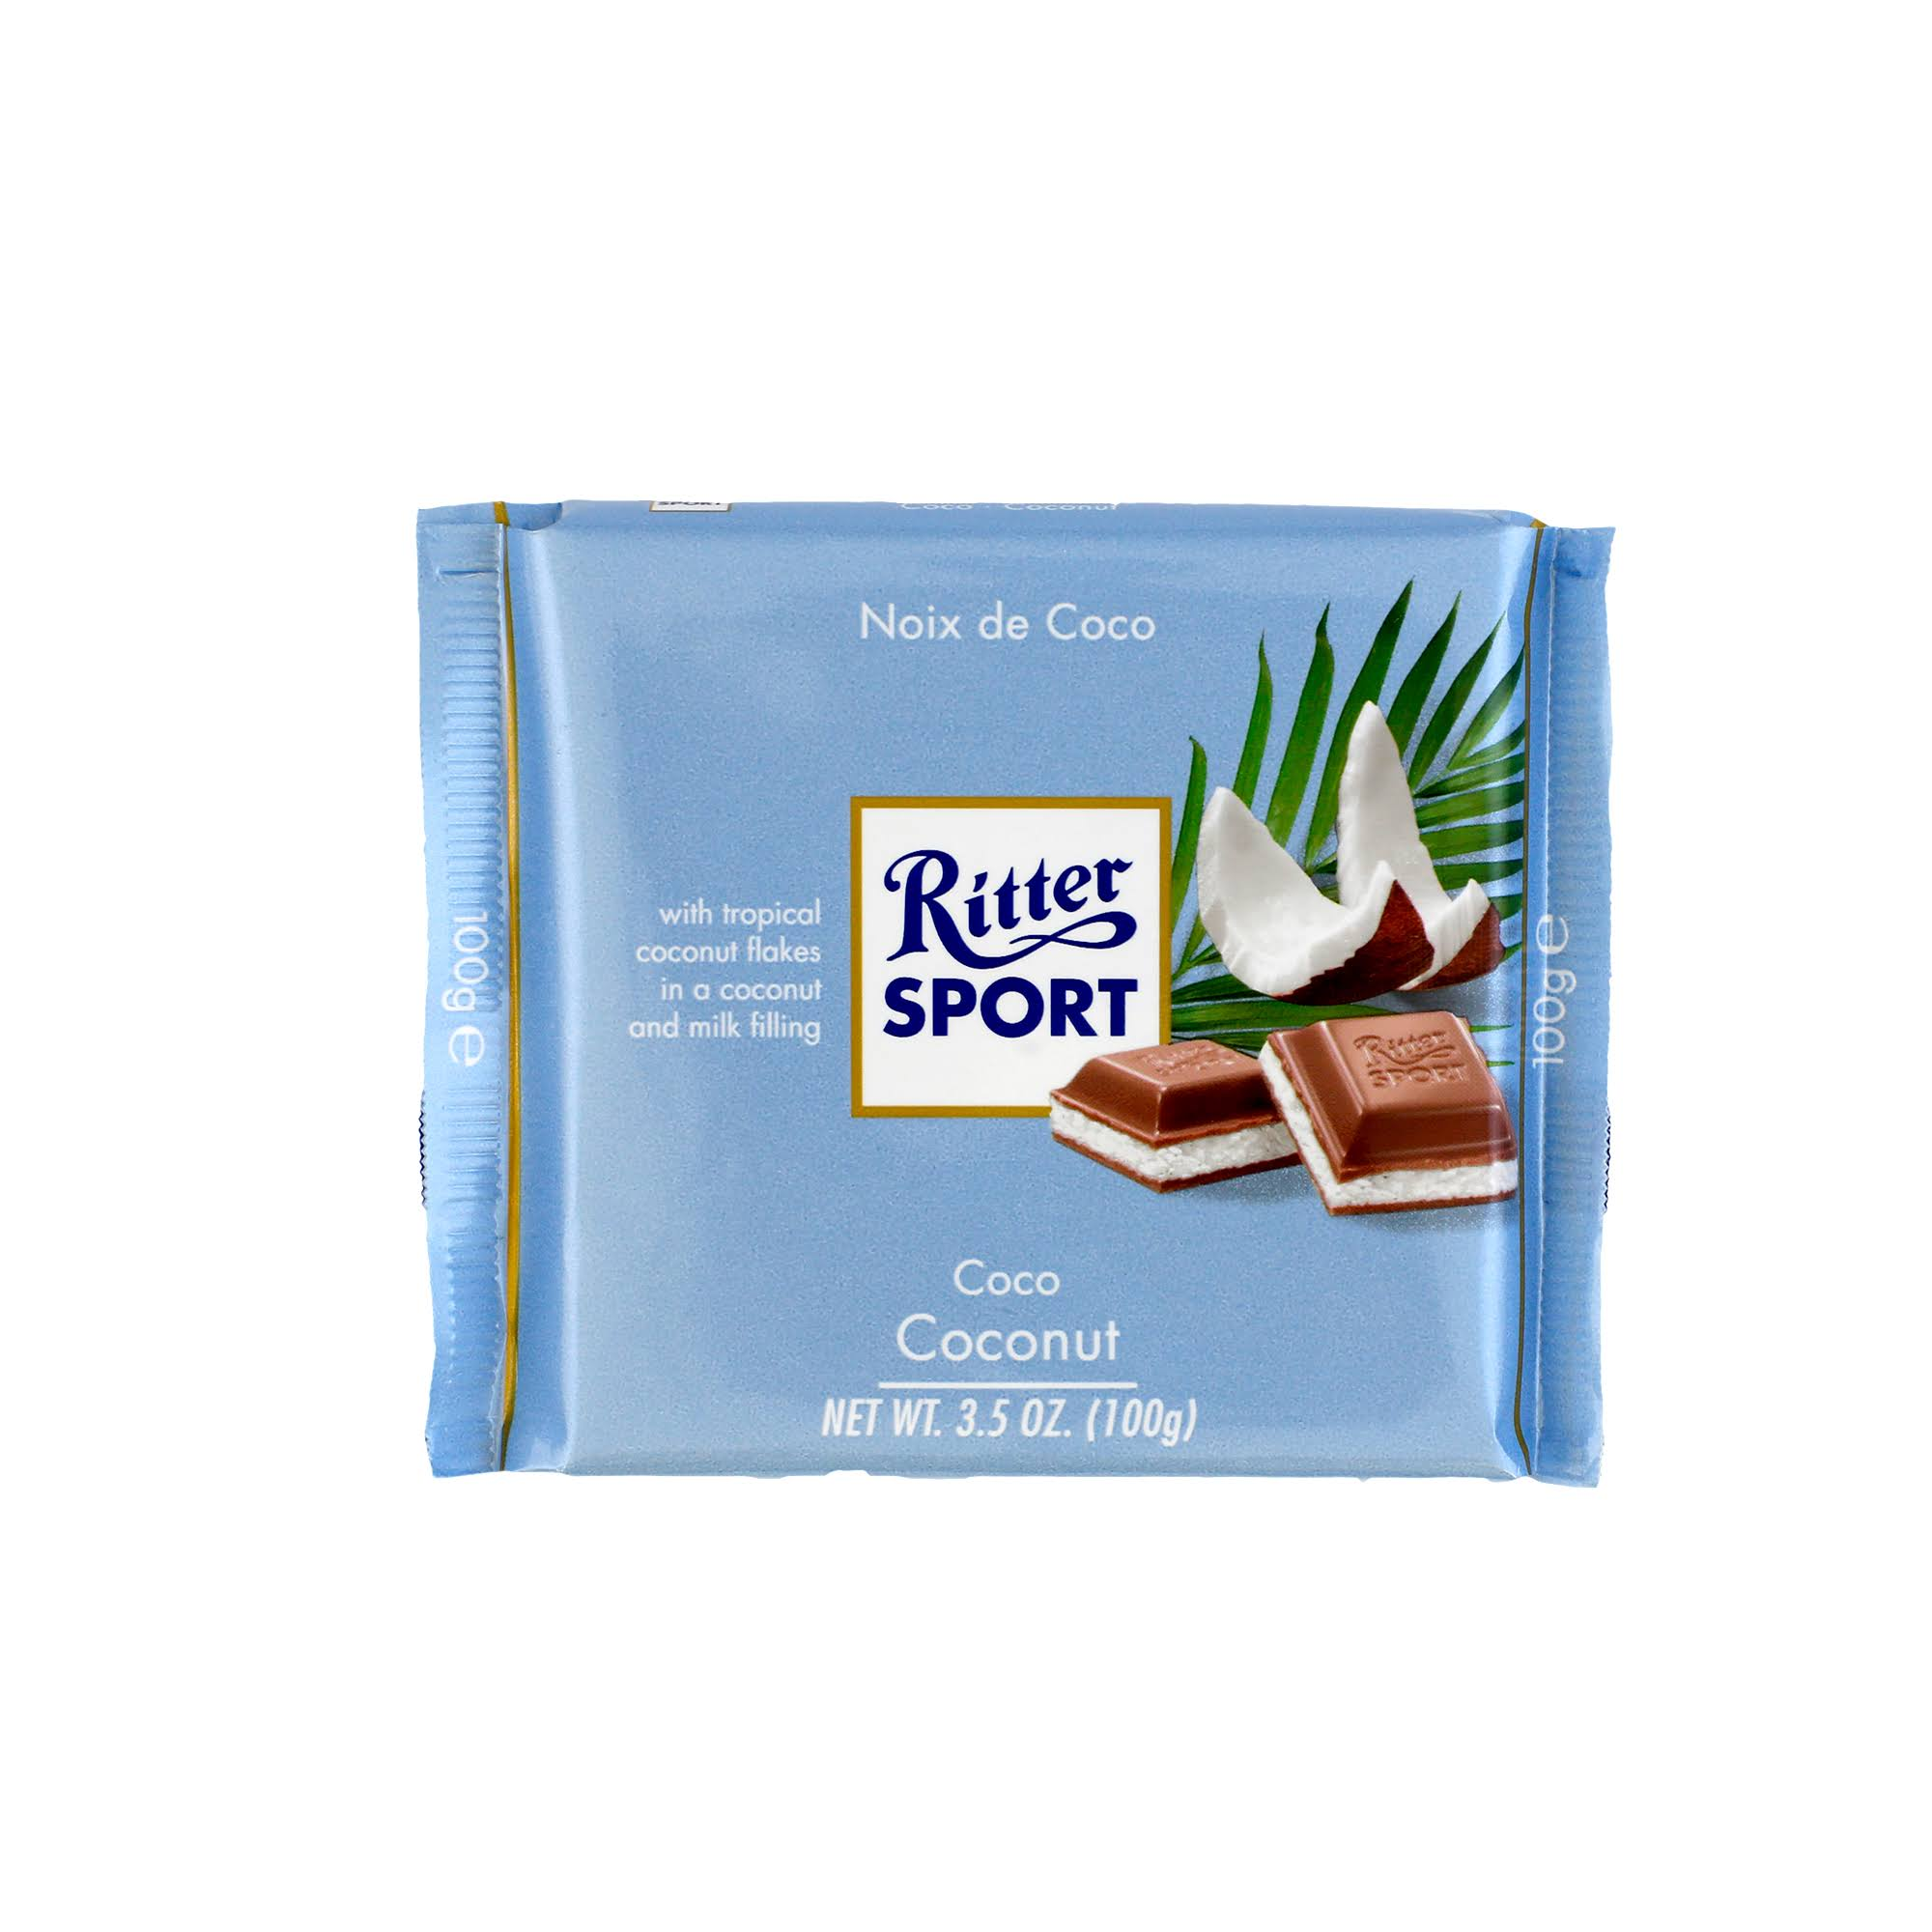 Ritter Sport Colorful Variety Milk Chocolate, with Coconut - 3.5 oz